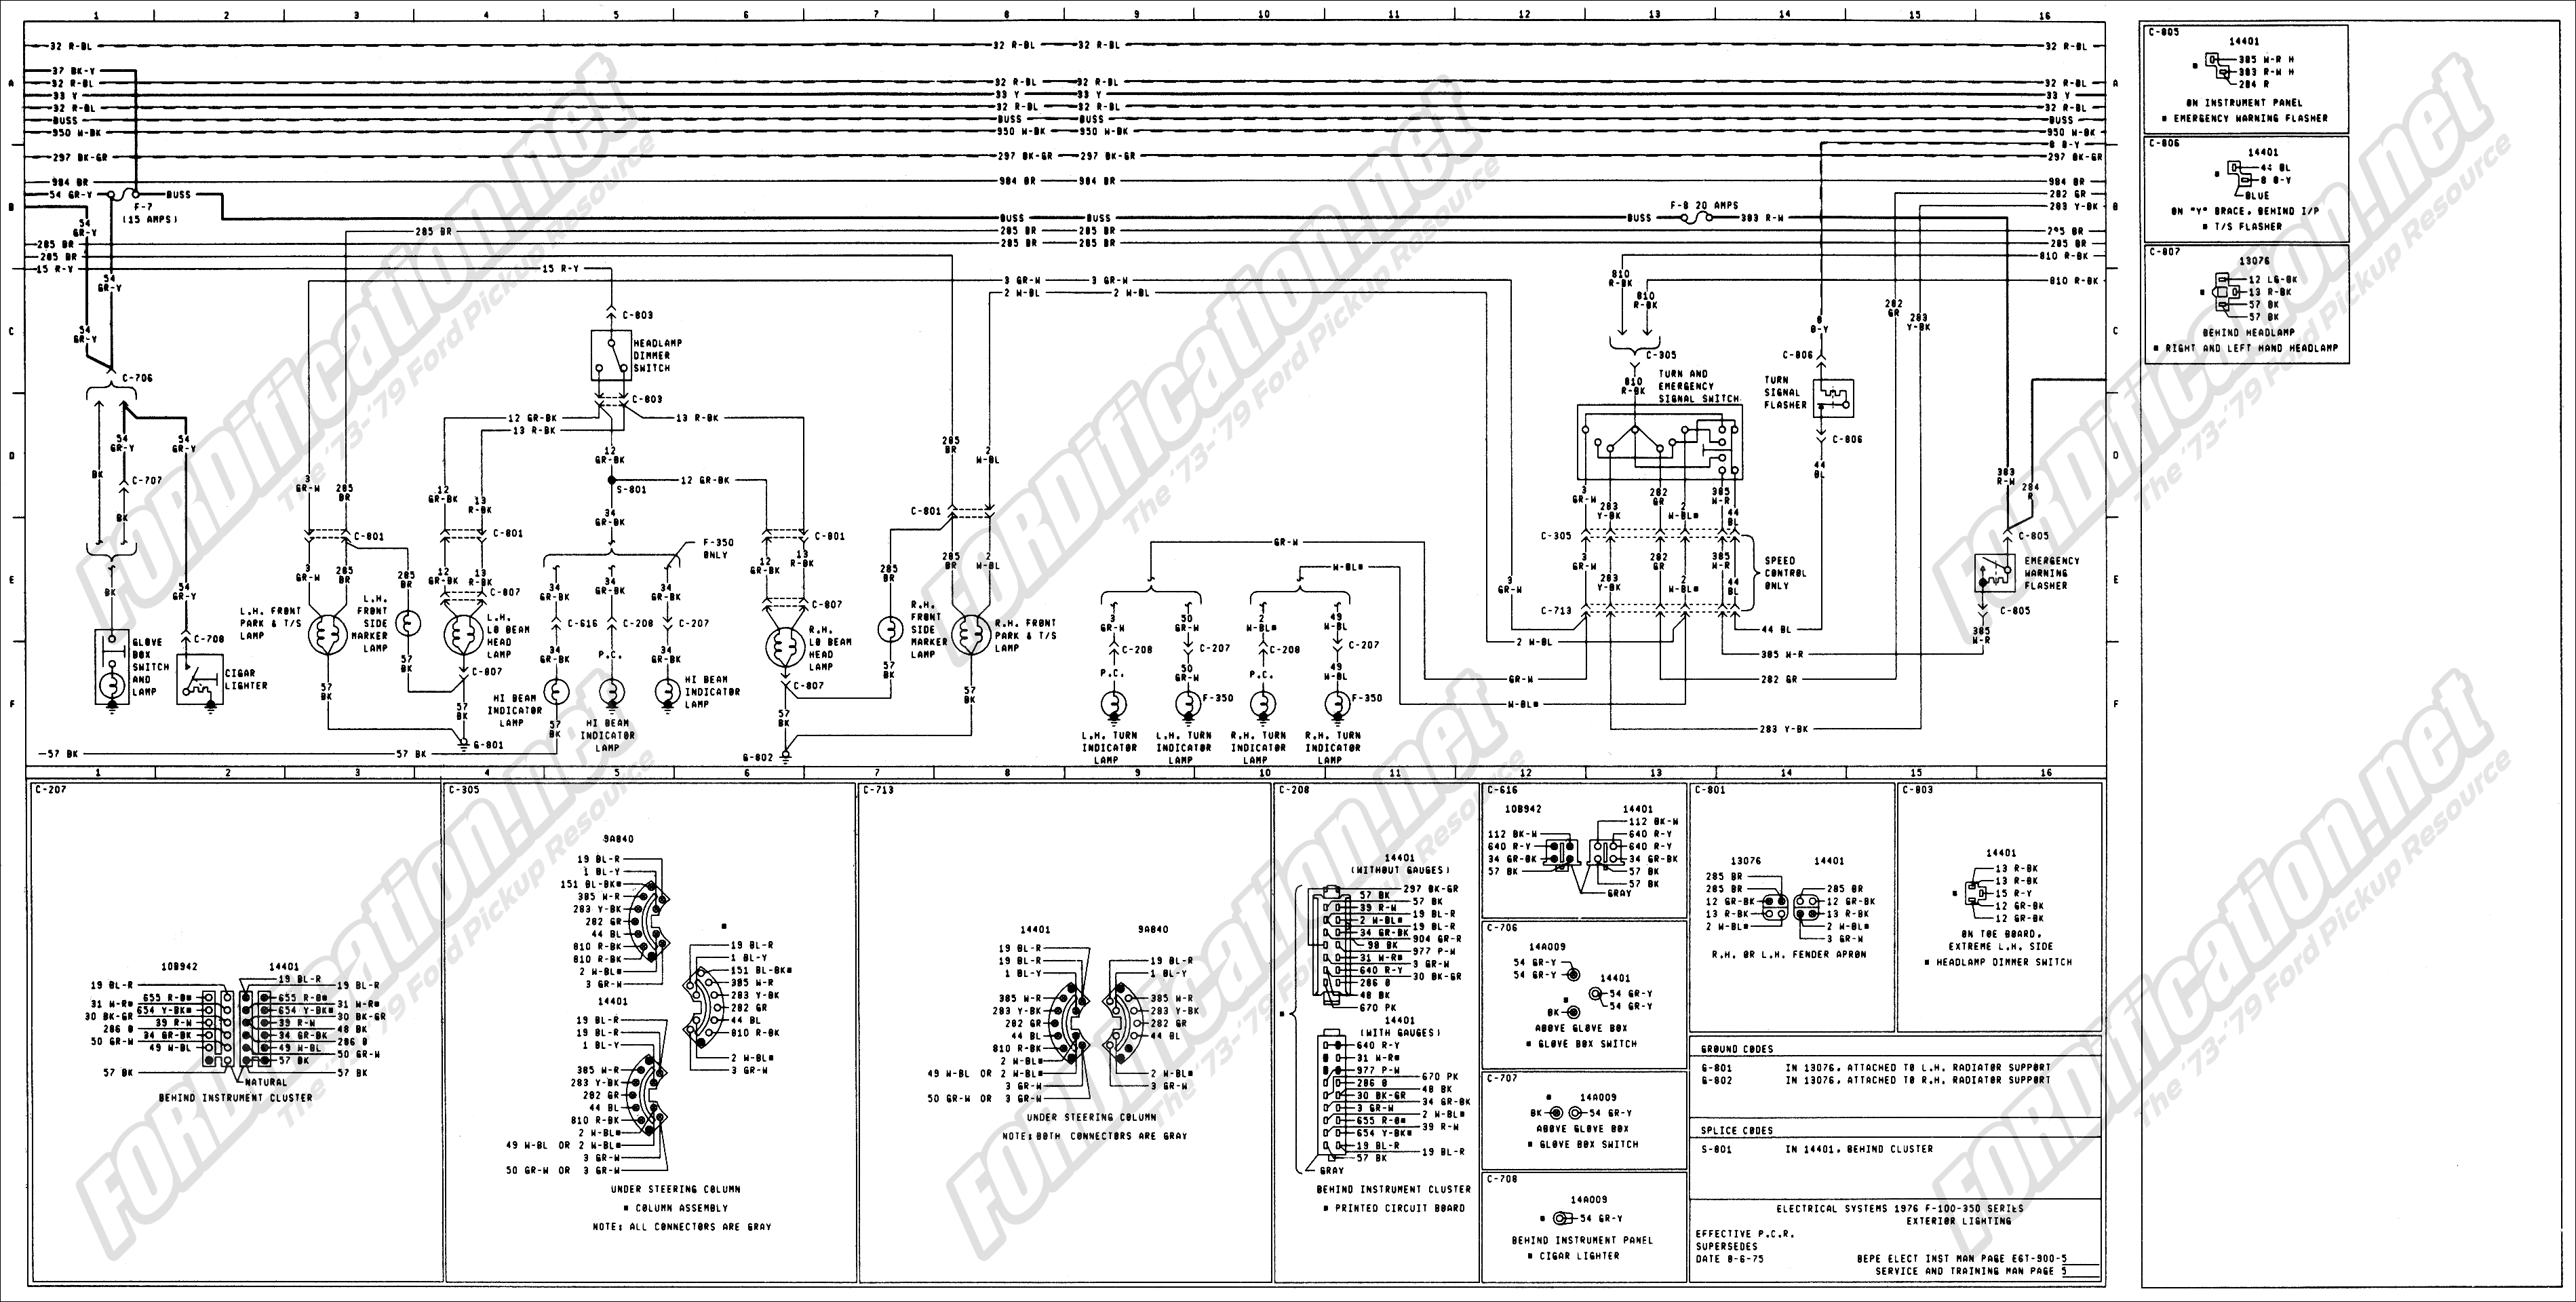 1973 1979 ford truck wiring diagrams schematics fordification net rh fordification net 1978 Ford F-250 Wiring Diagram 1978 Ford F-150 Wiring Diagram